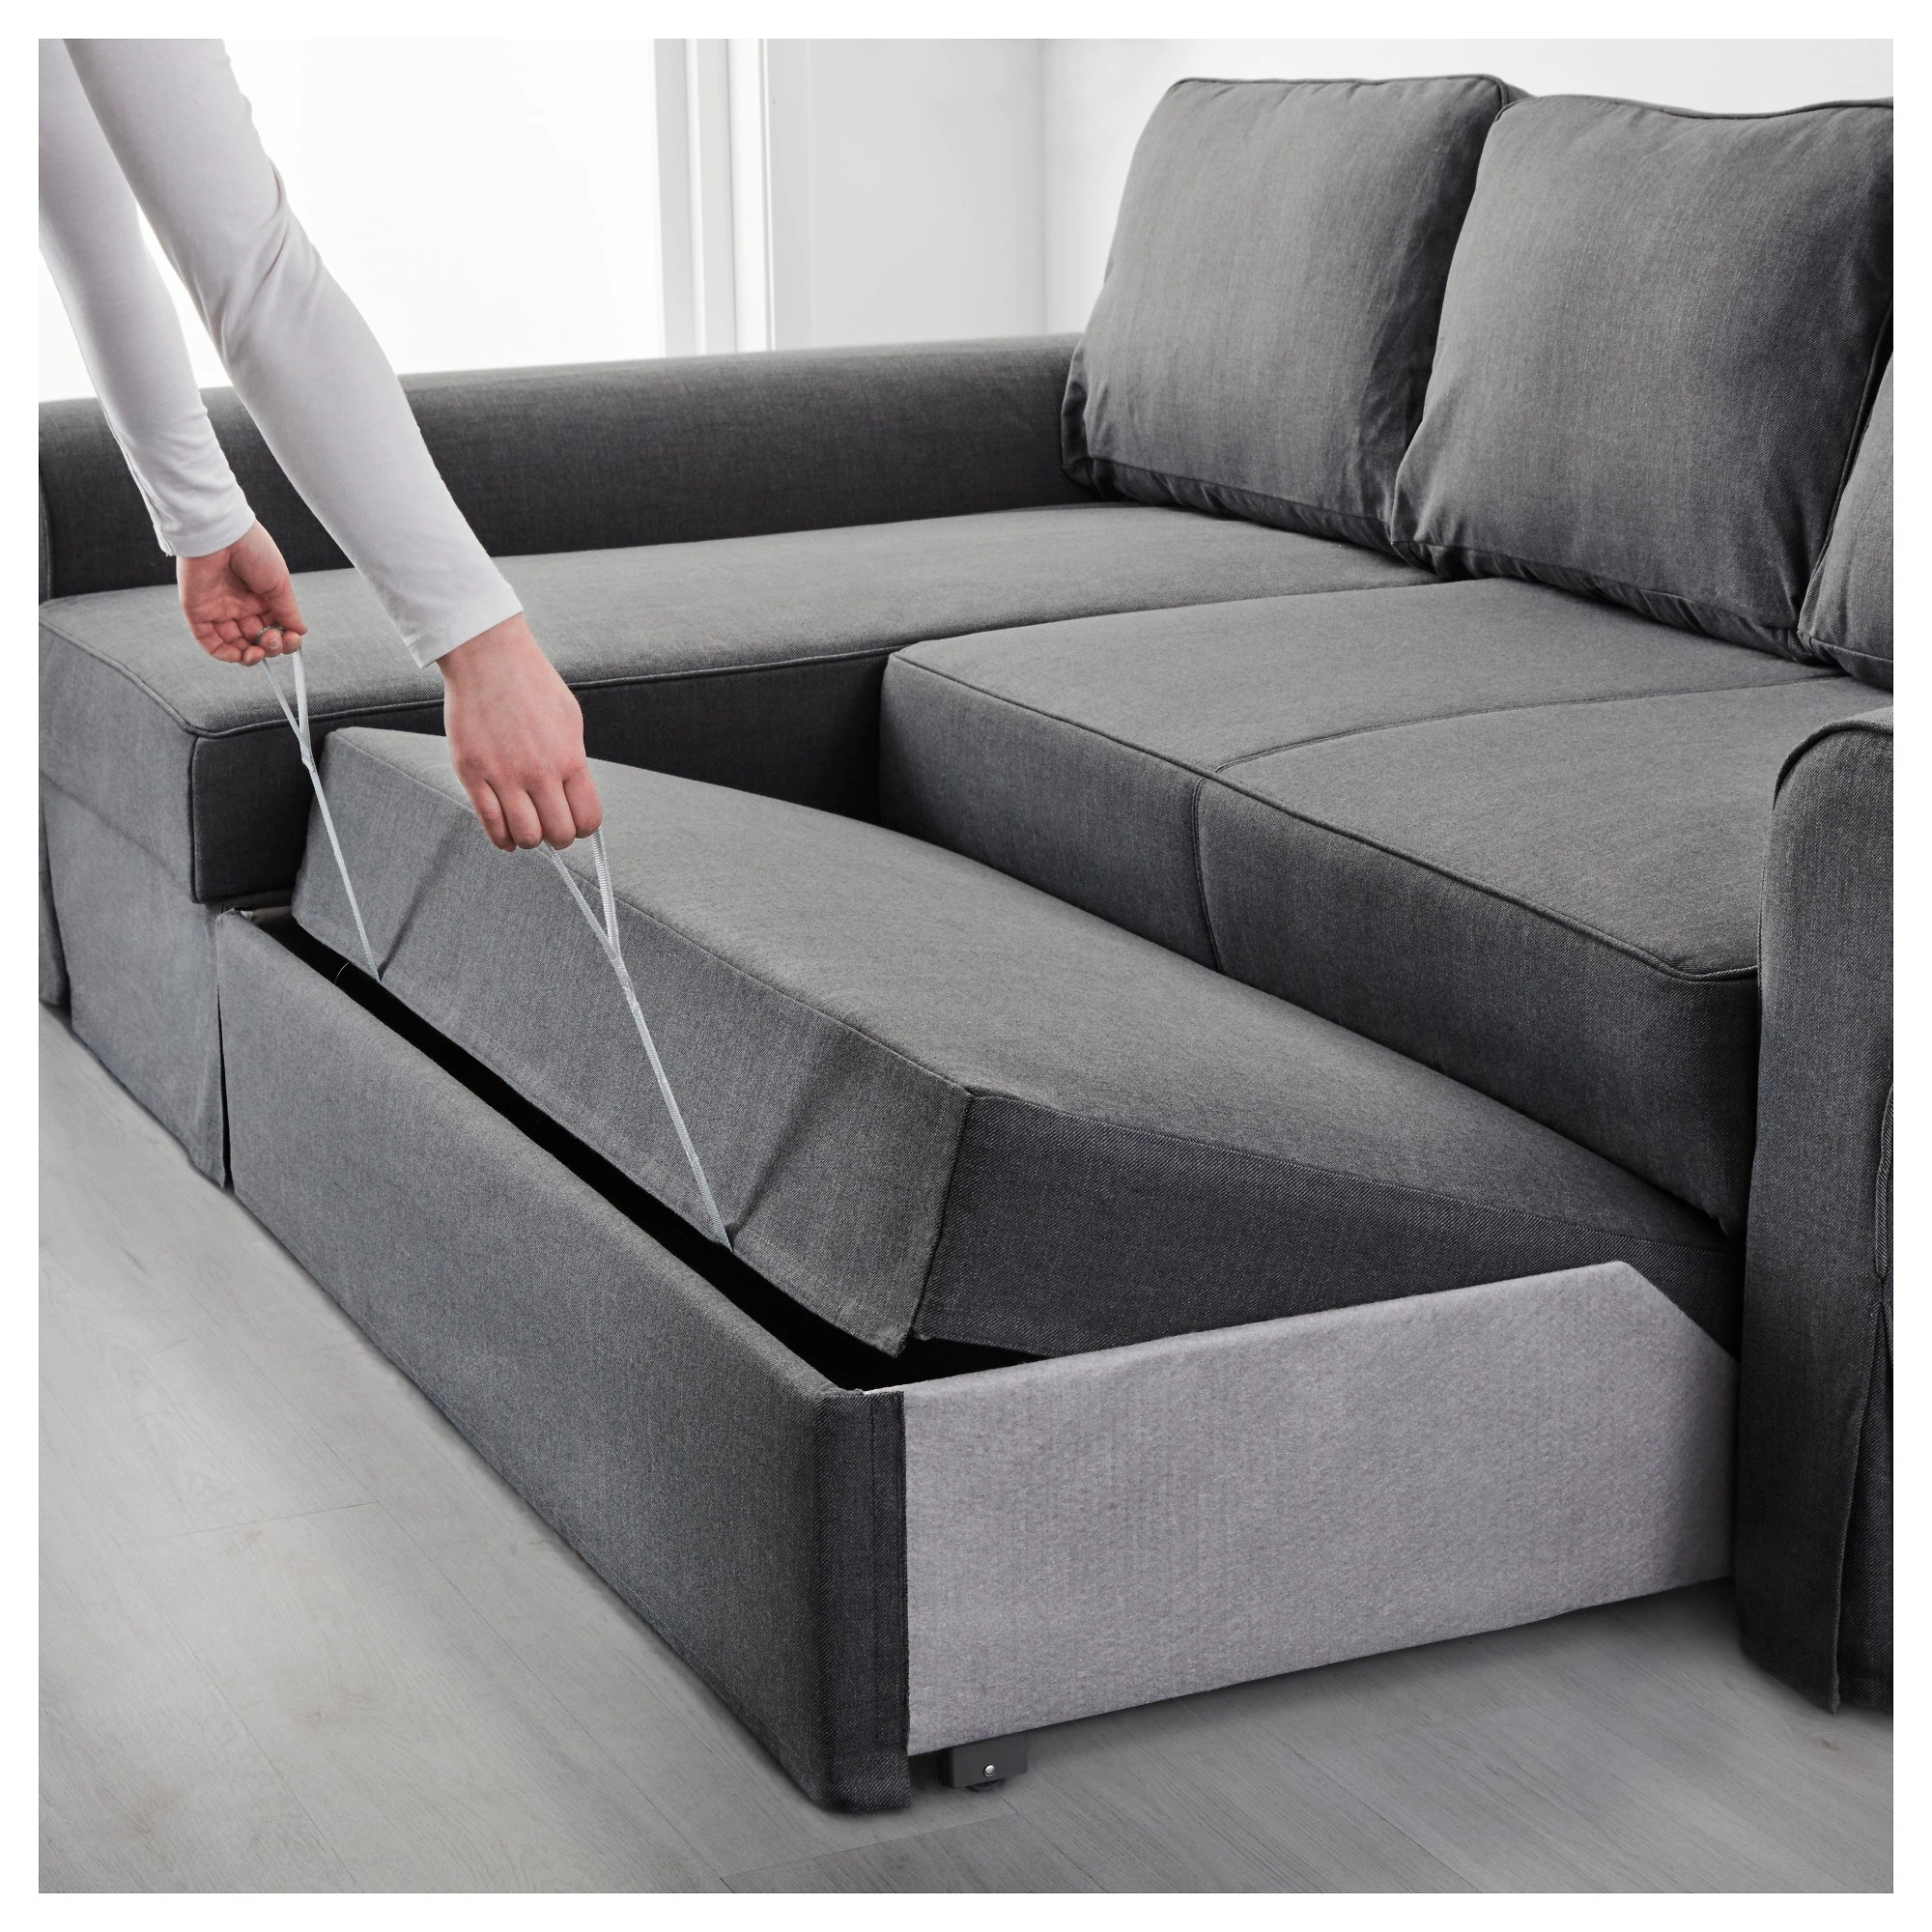 Backabro Sessel Backabro Bettsofa Recamiere Tygelsjö Beige